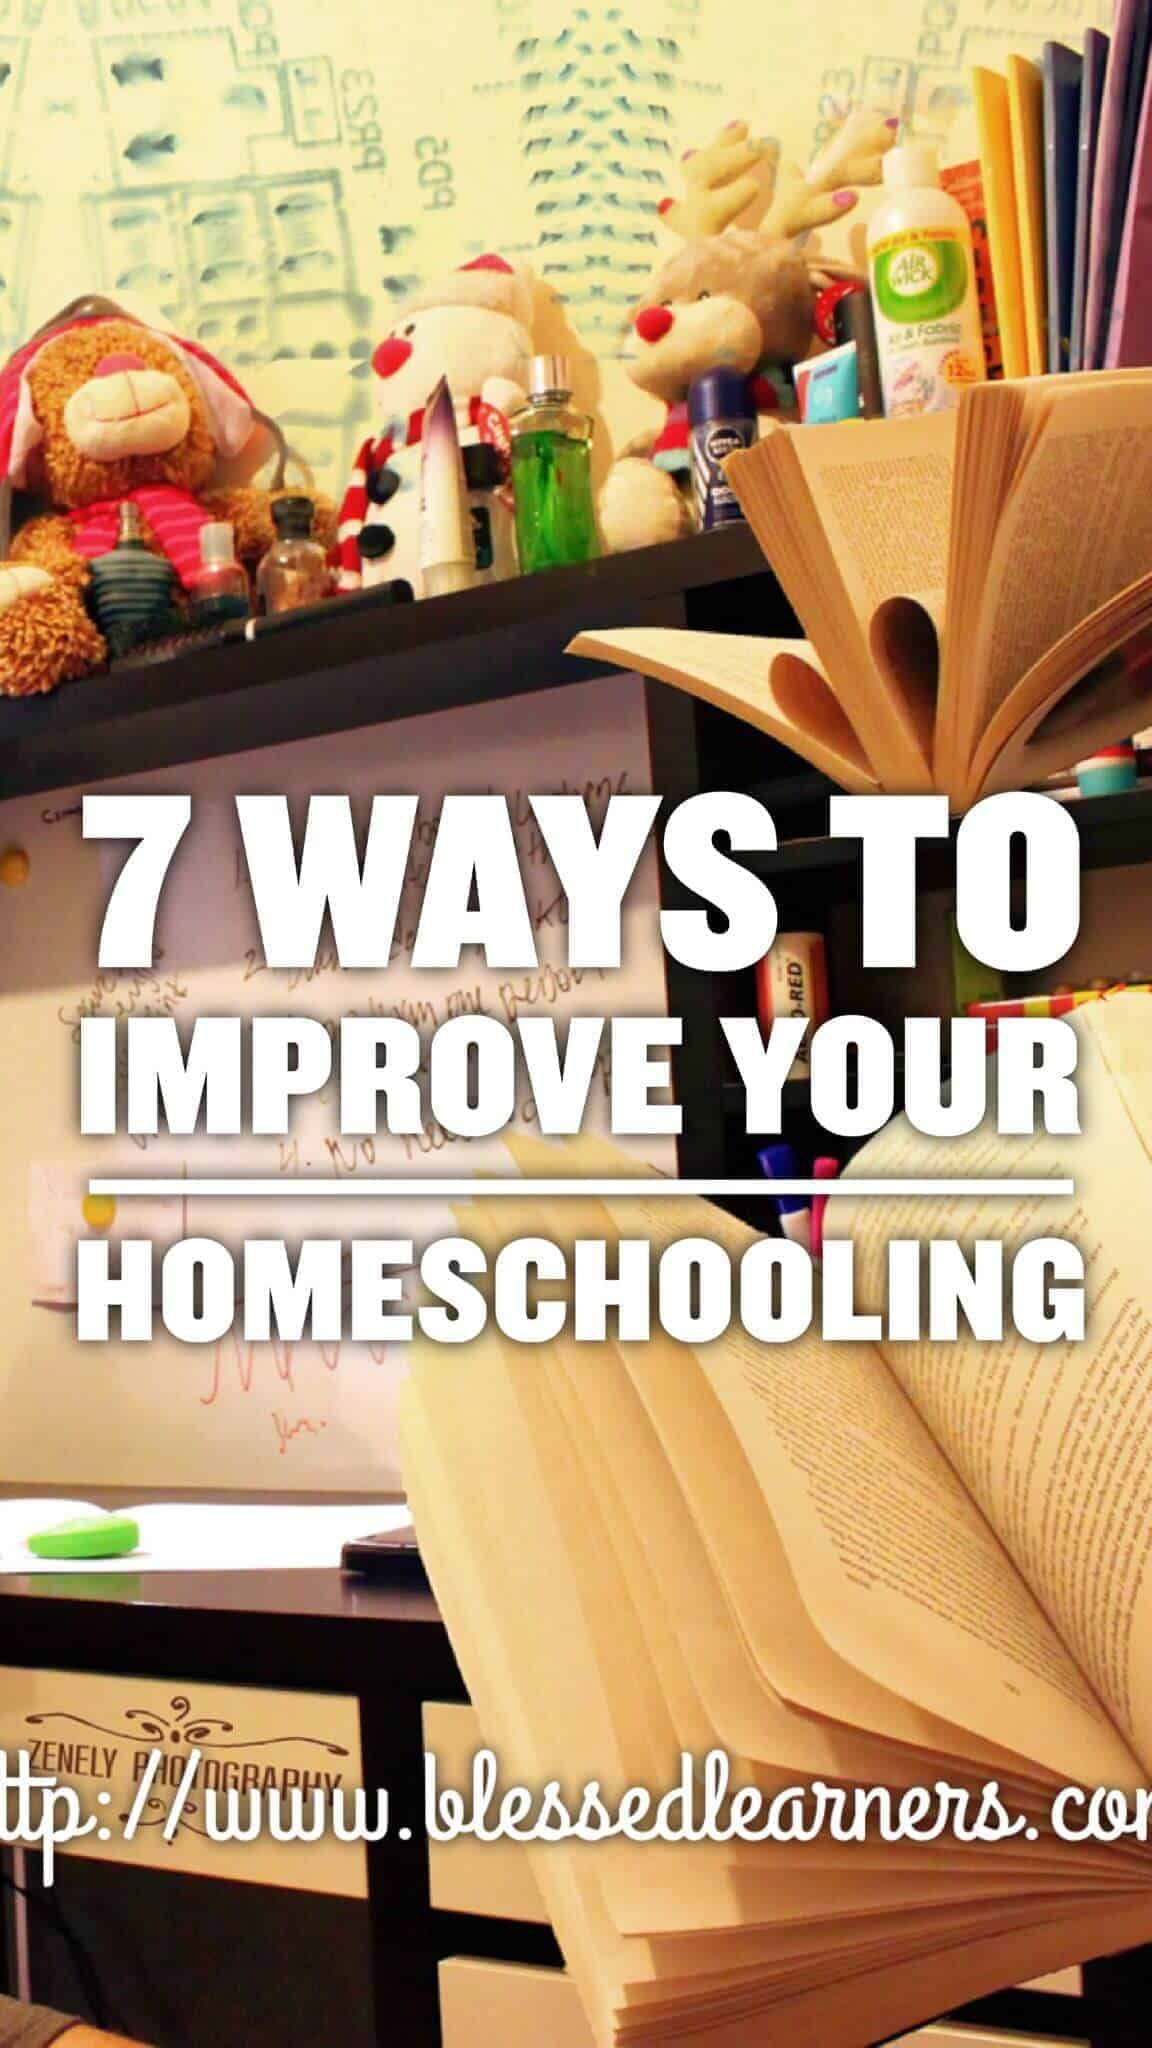 7 Ways to Improve Your Homeschooling